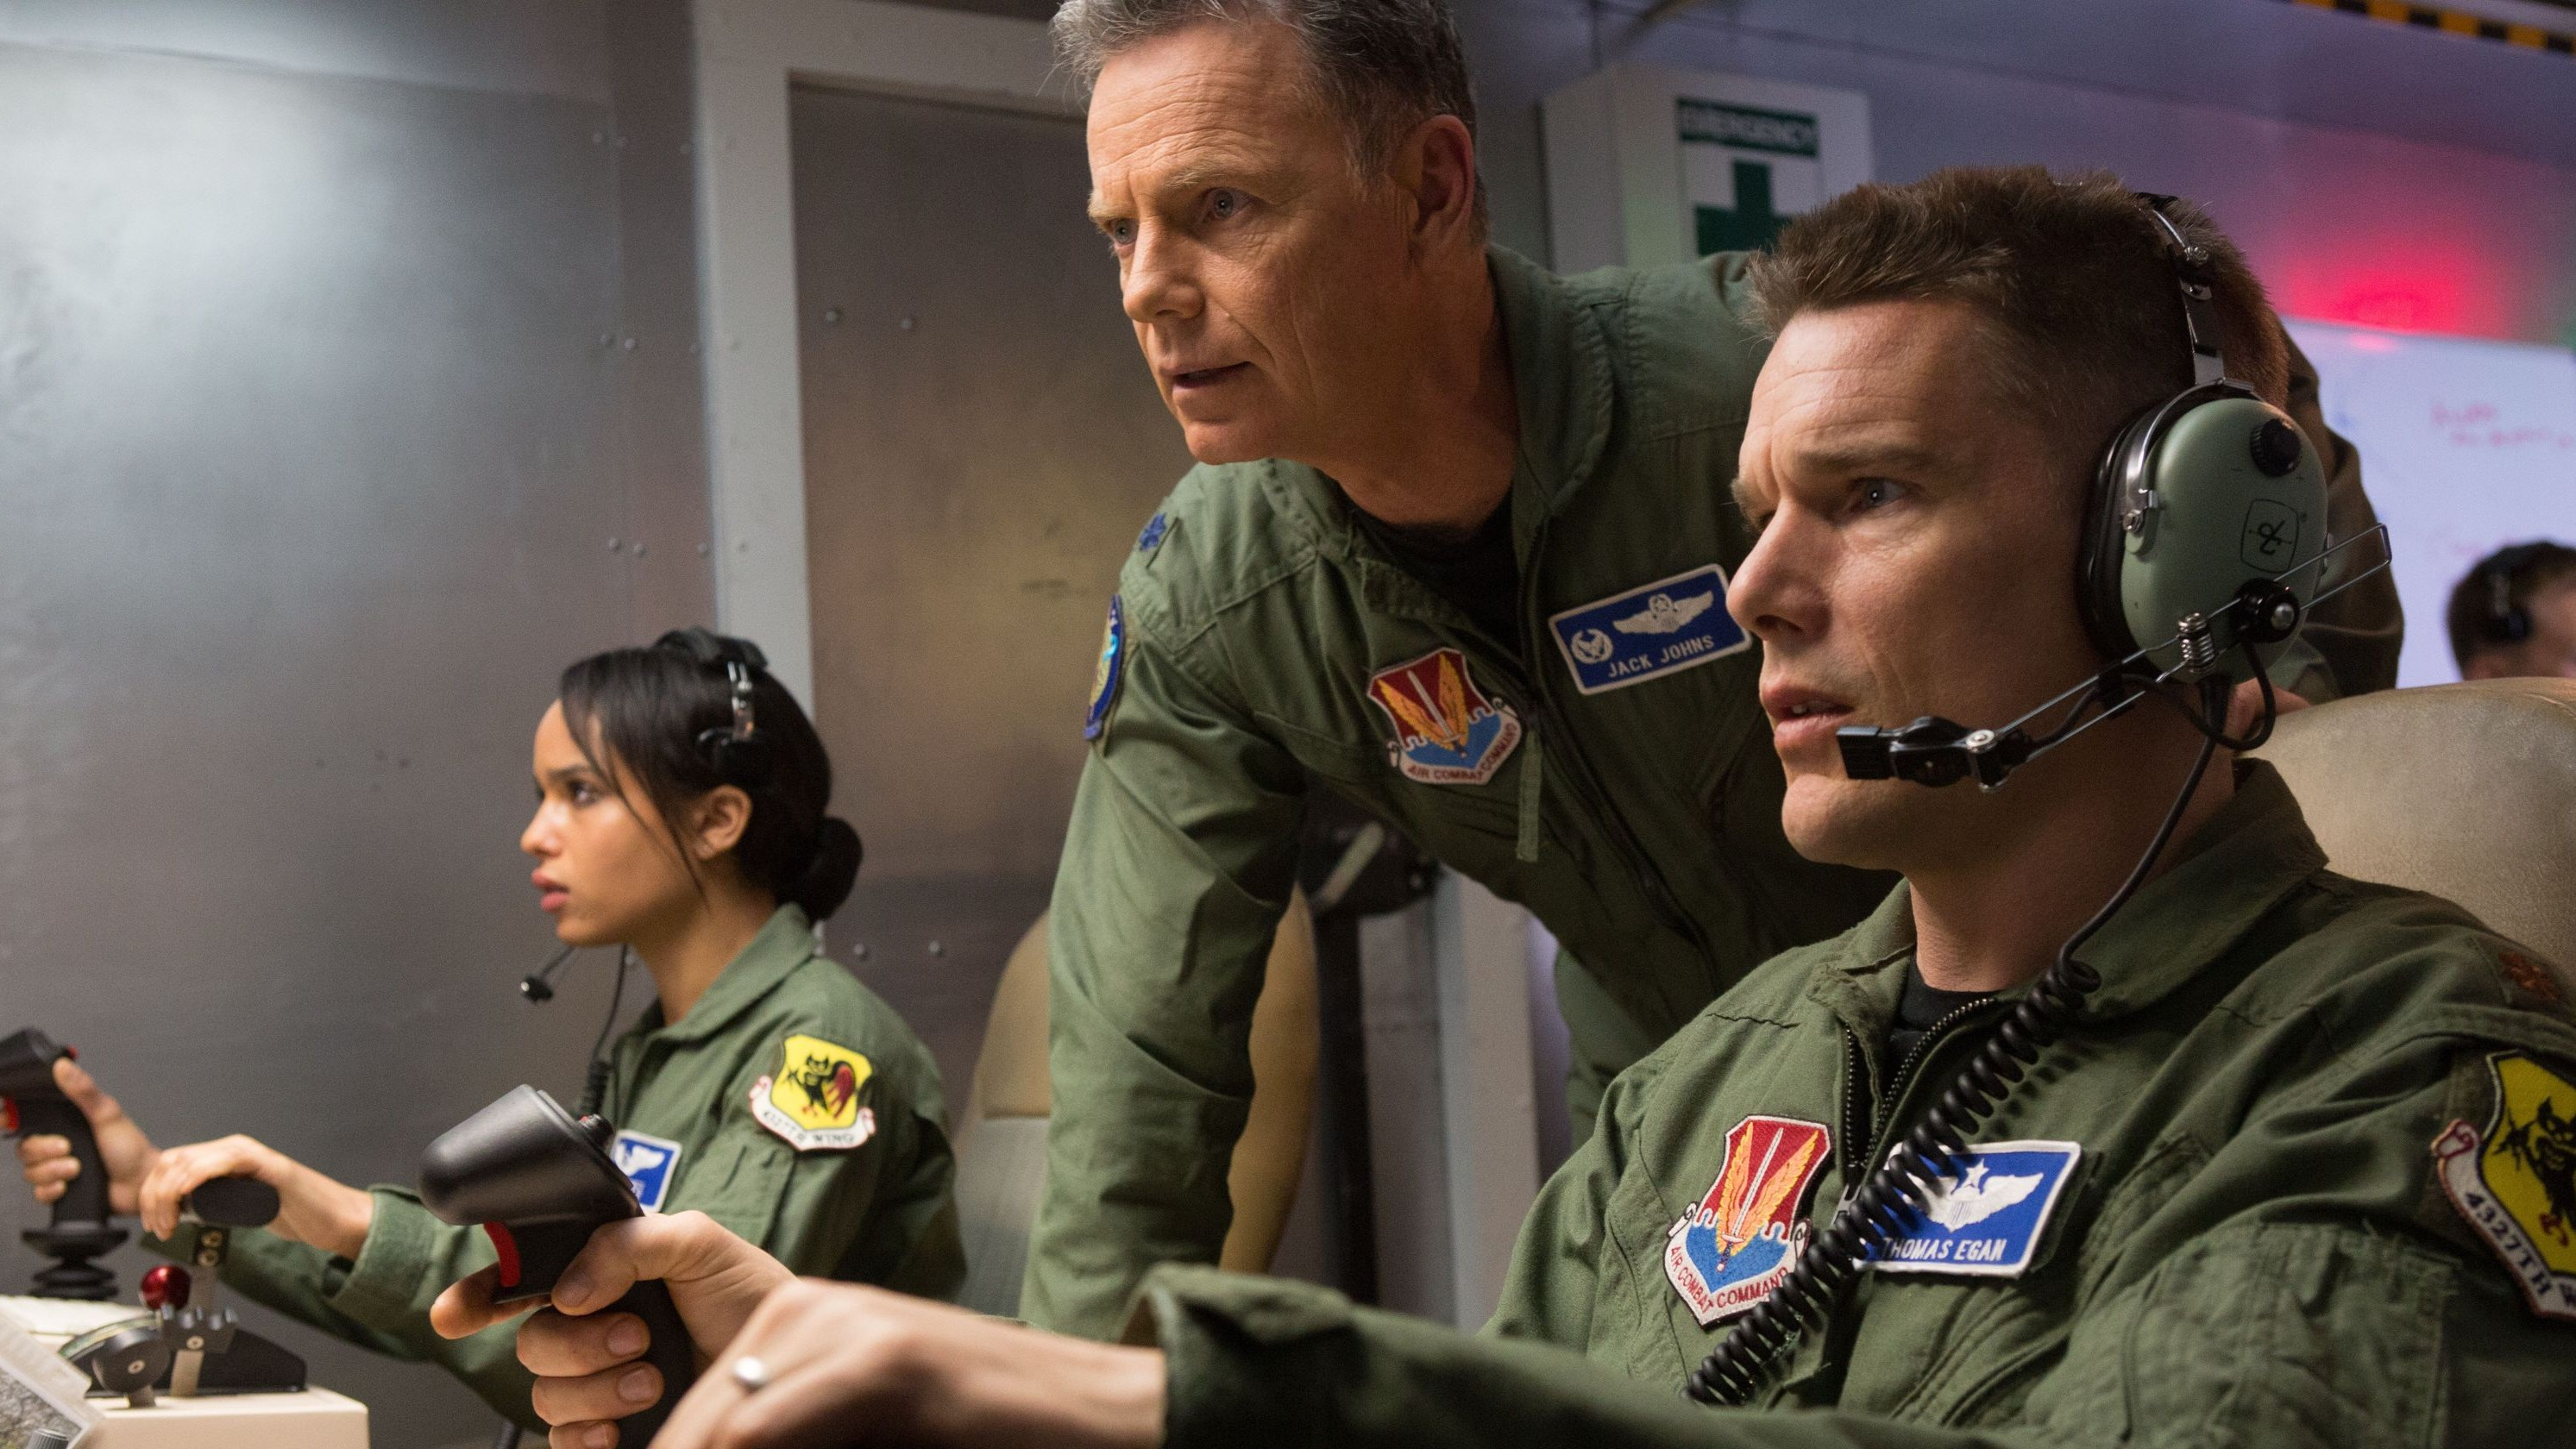 Can 'Good Kill' Make the Public Care About Drone Warfare?